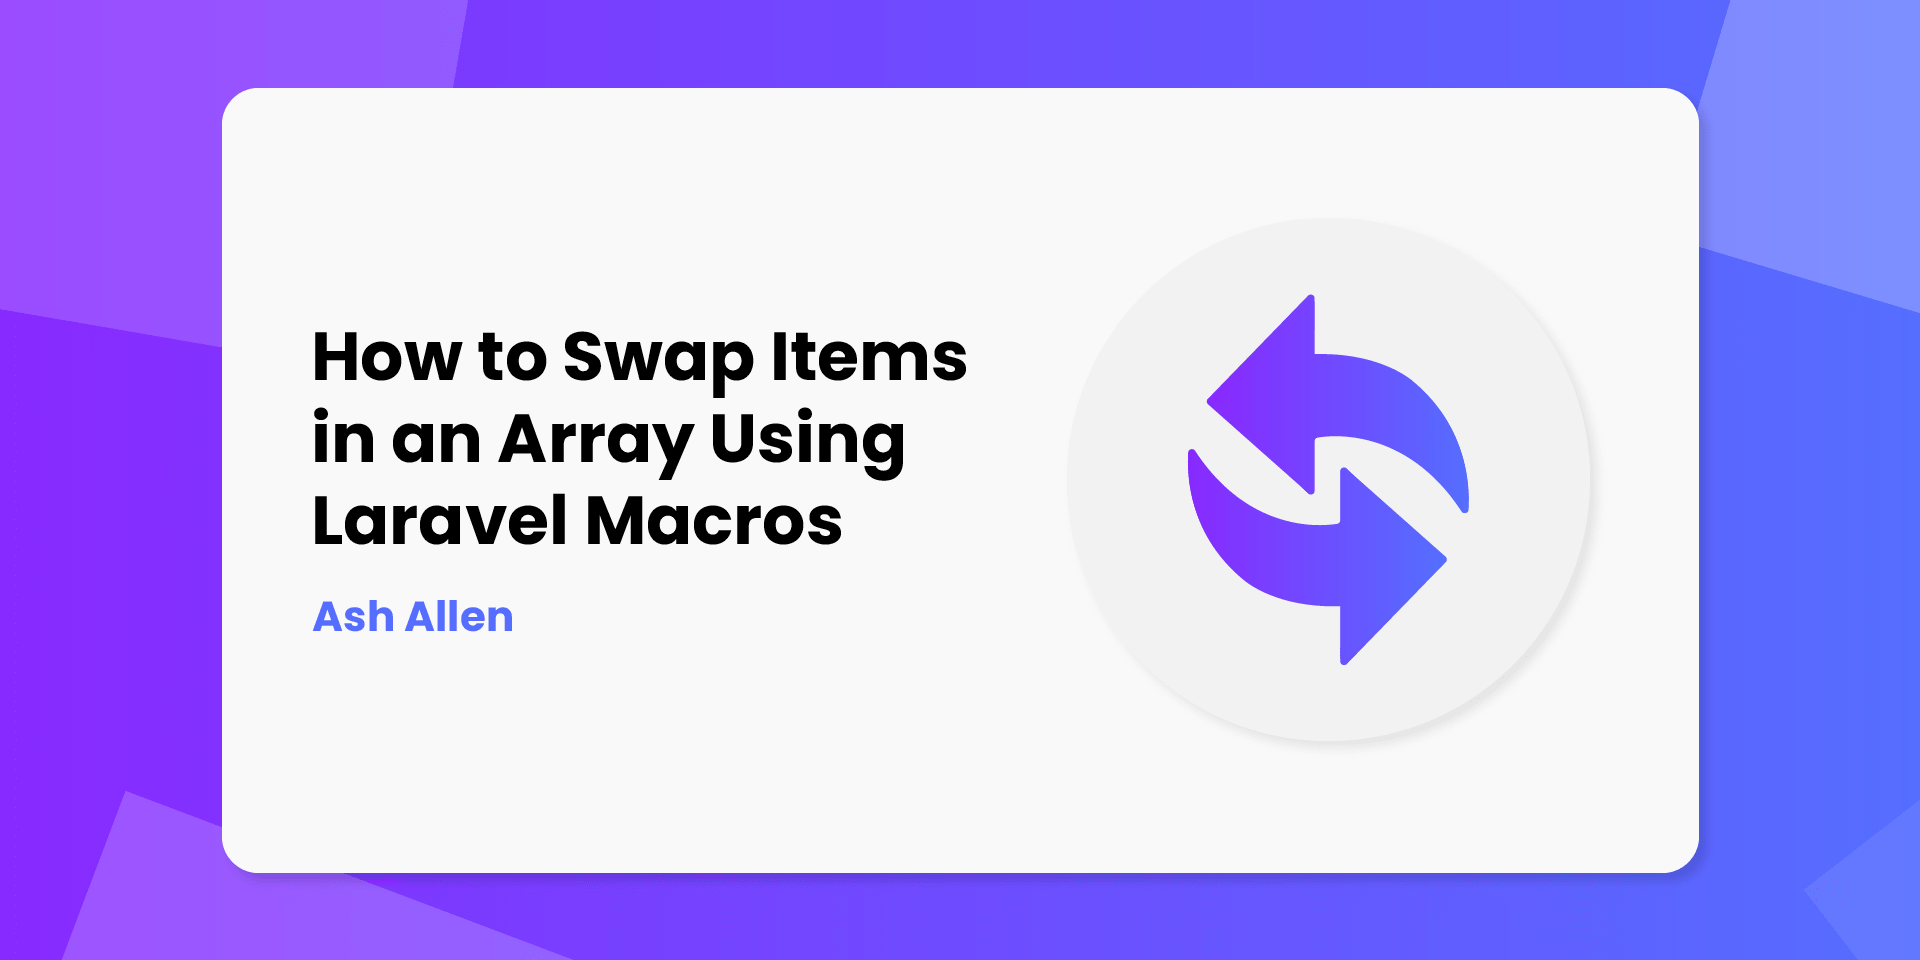 Learn how to create a new Laravel macro and register it in a service provider. Then find out how we can use that macro to swap items in an array using the Arr::swap() method.